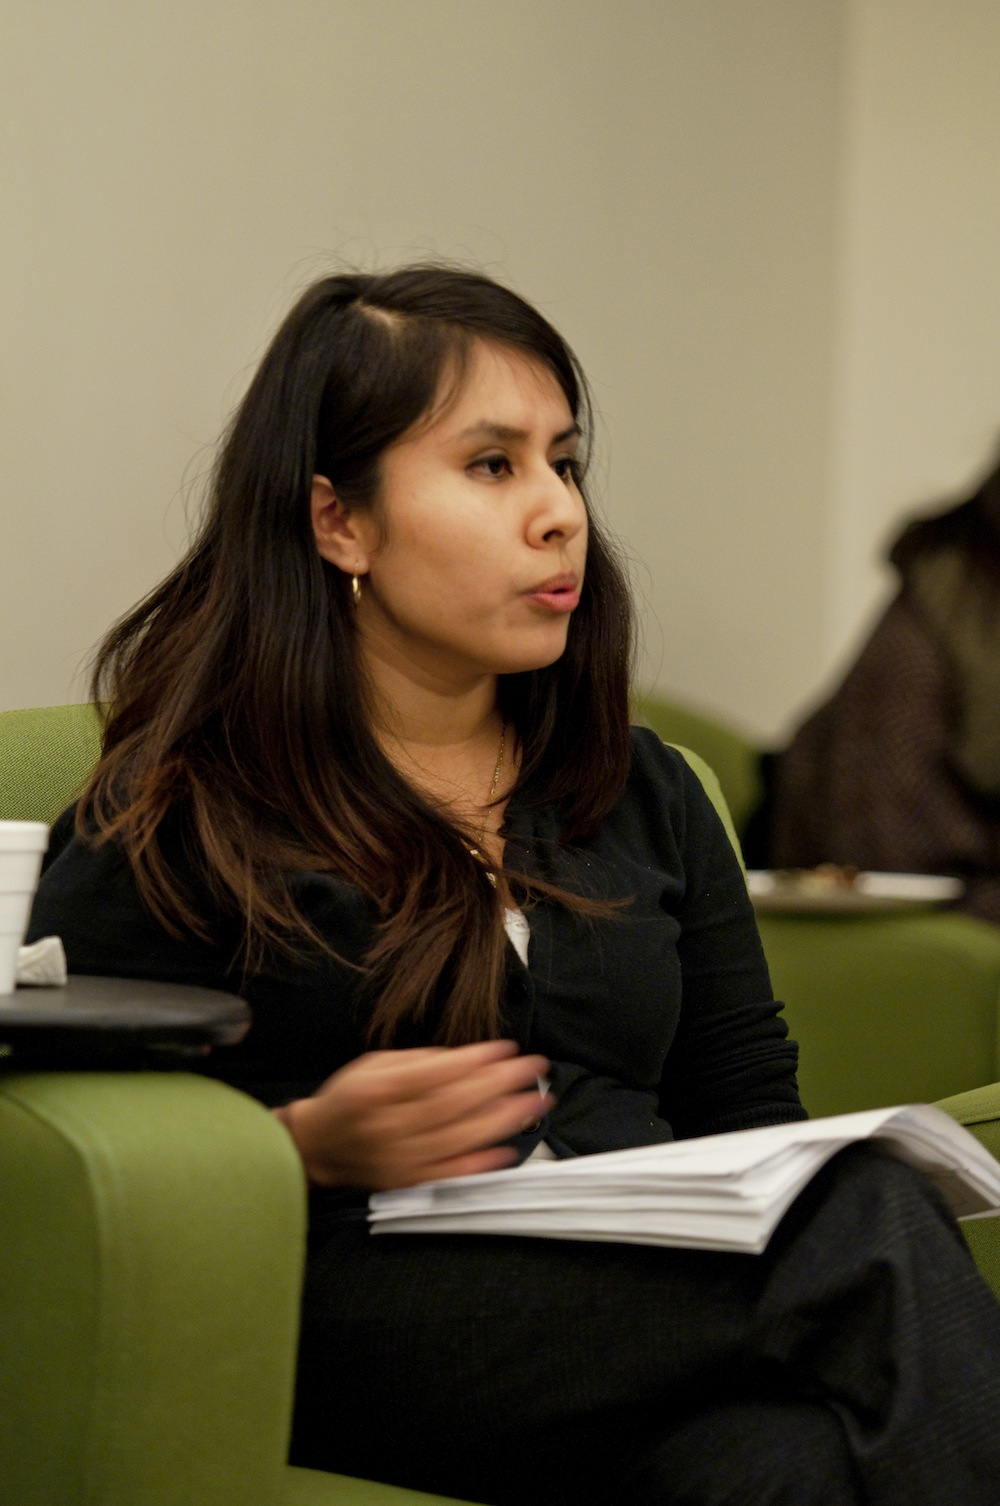 Before life after college, undocumented students seek support